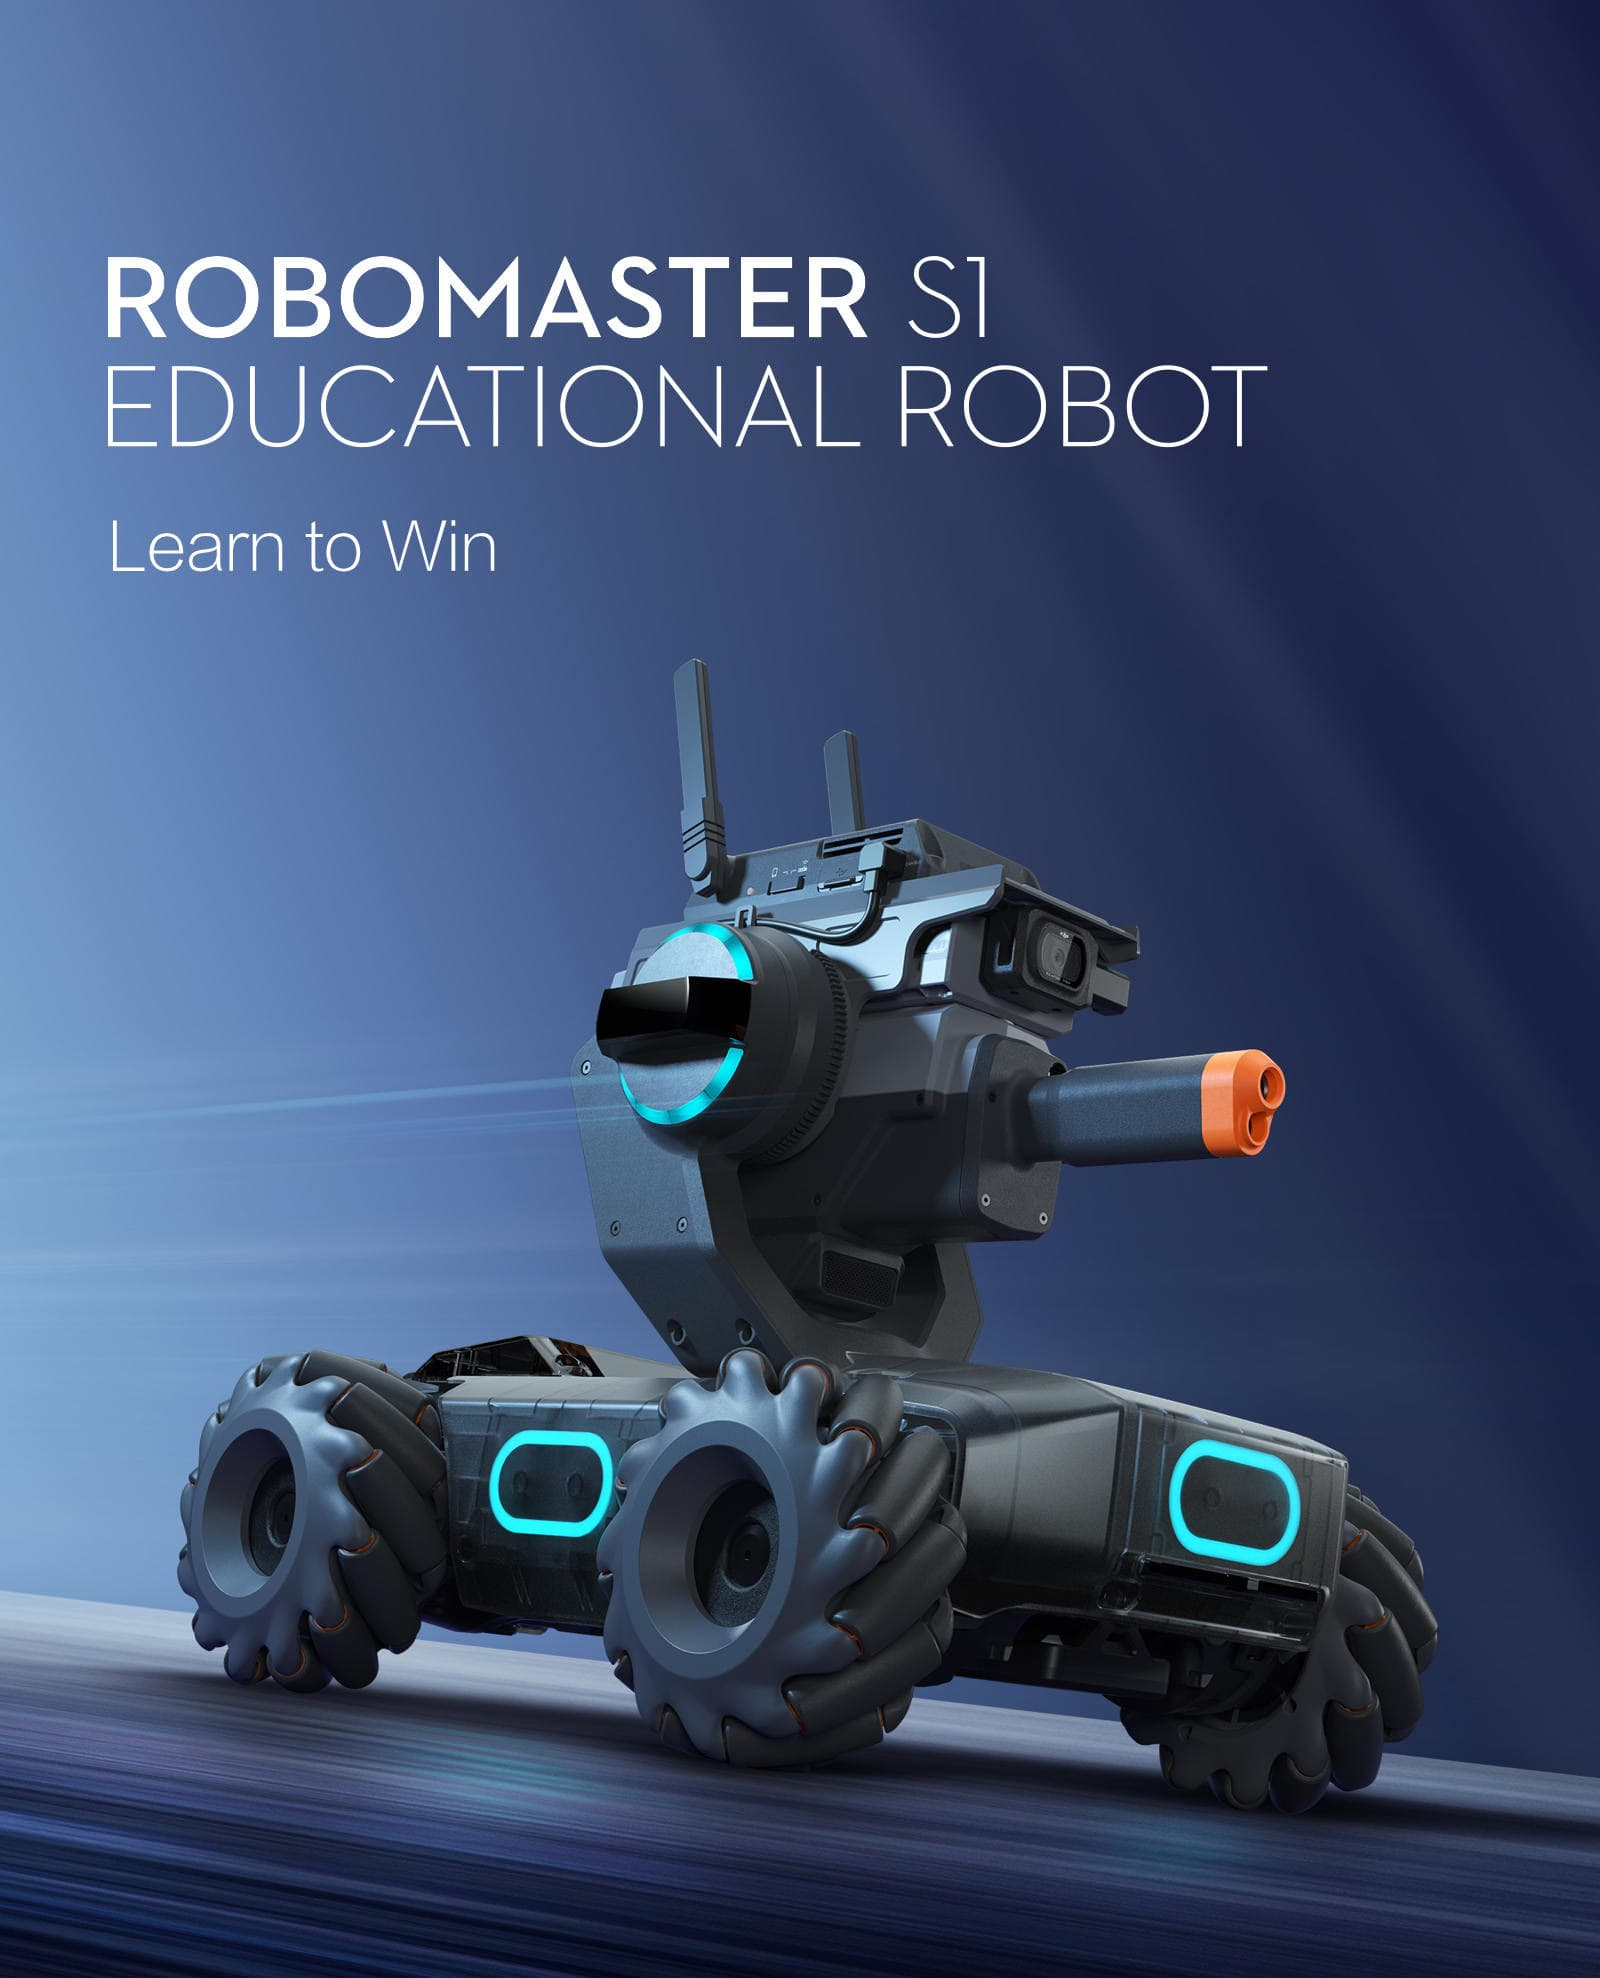 RoboMaster S1 - Educational Robot